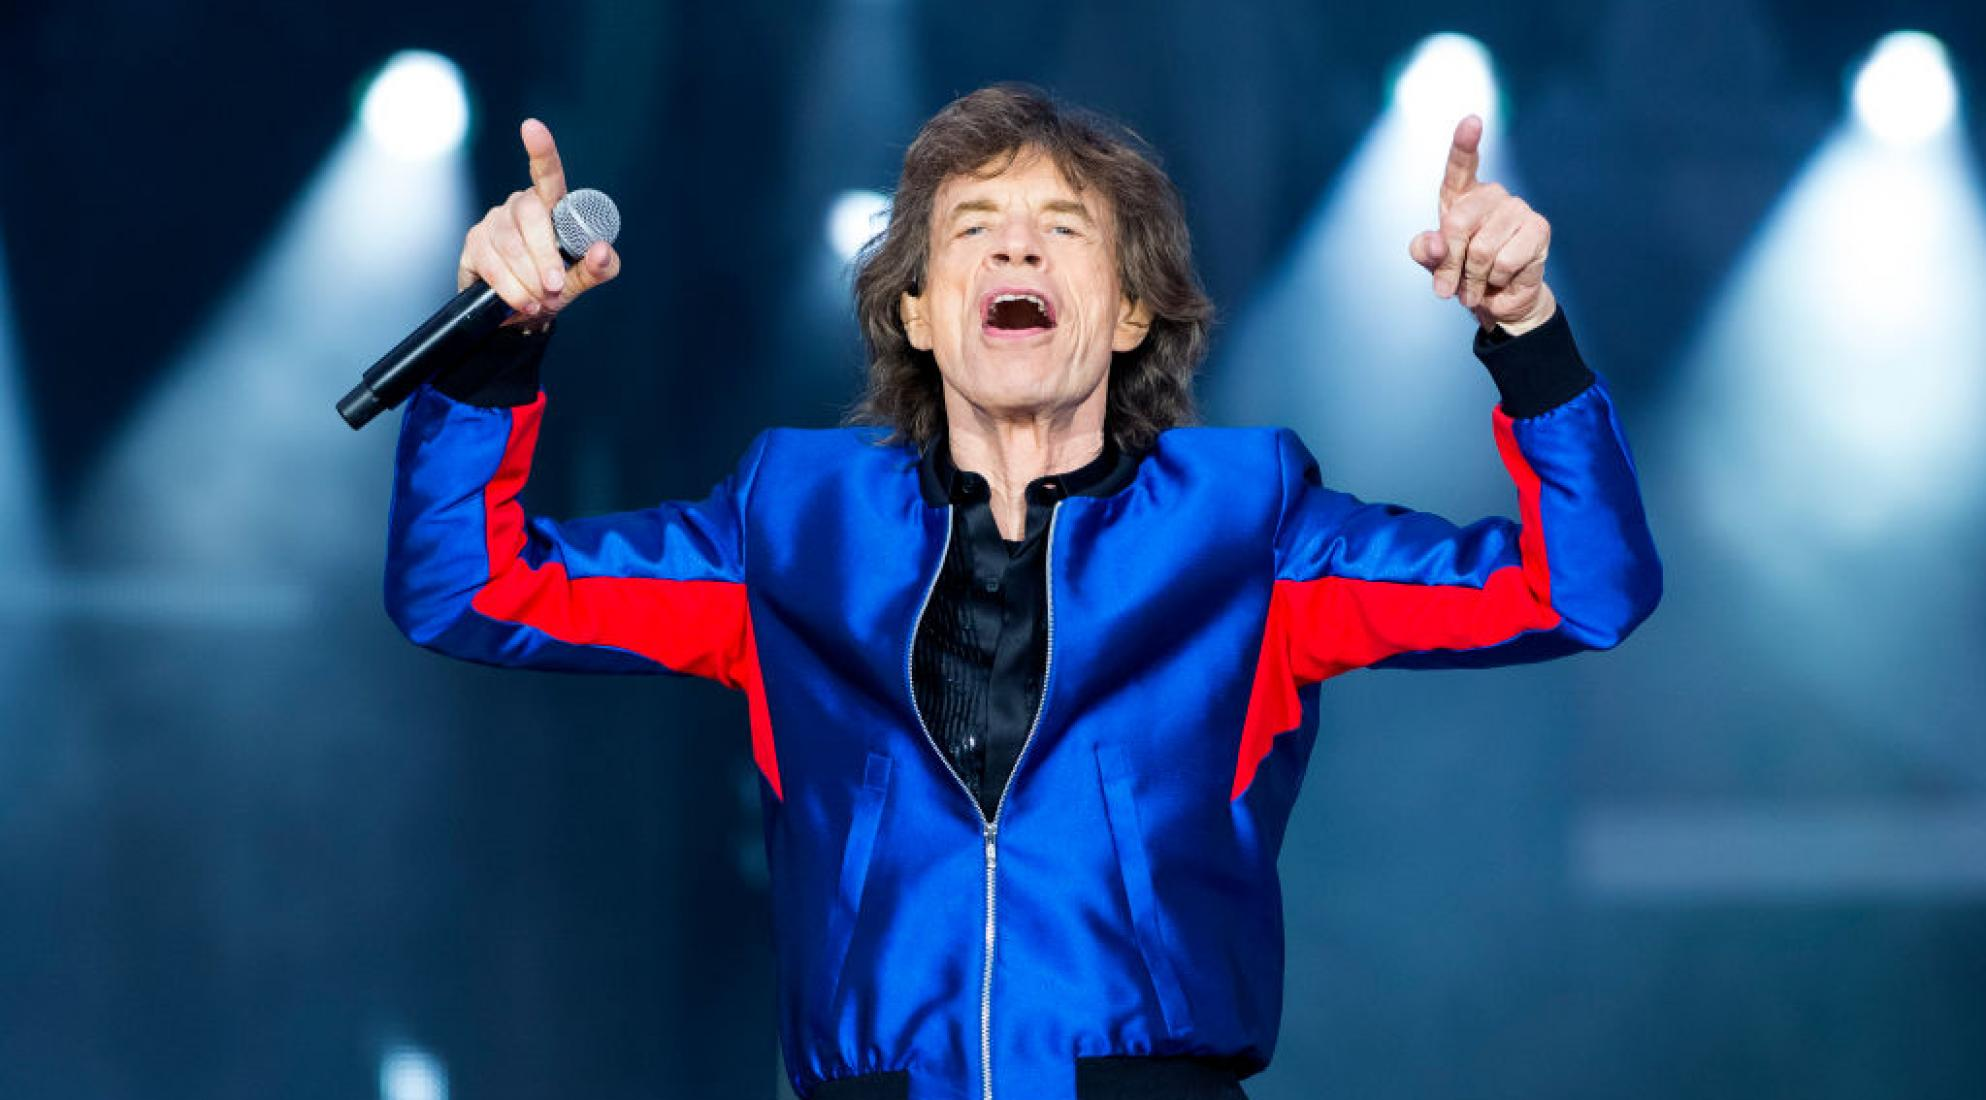 Mick Jagger of the Rolling Stones performs in 2018